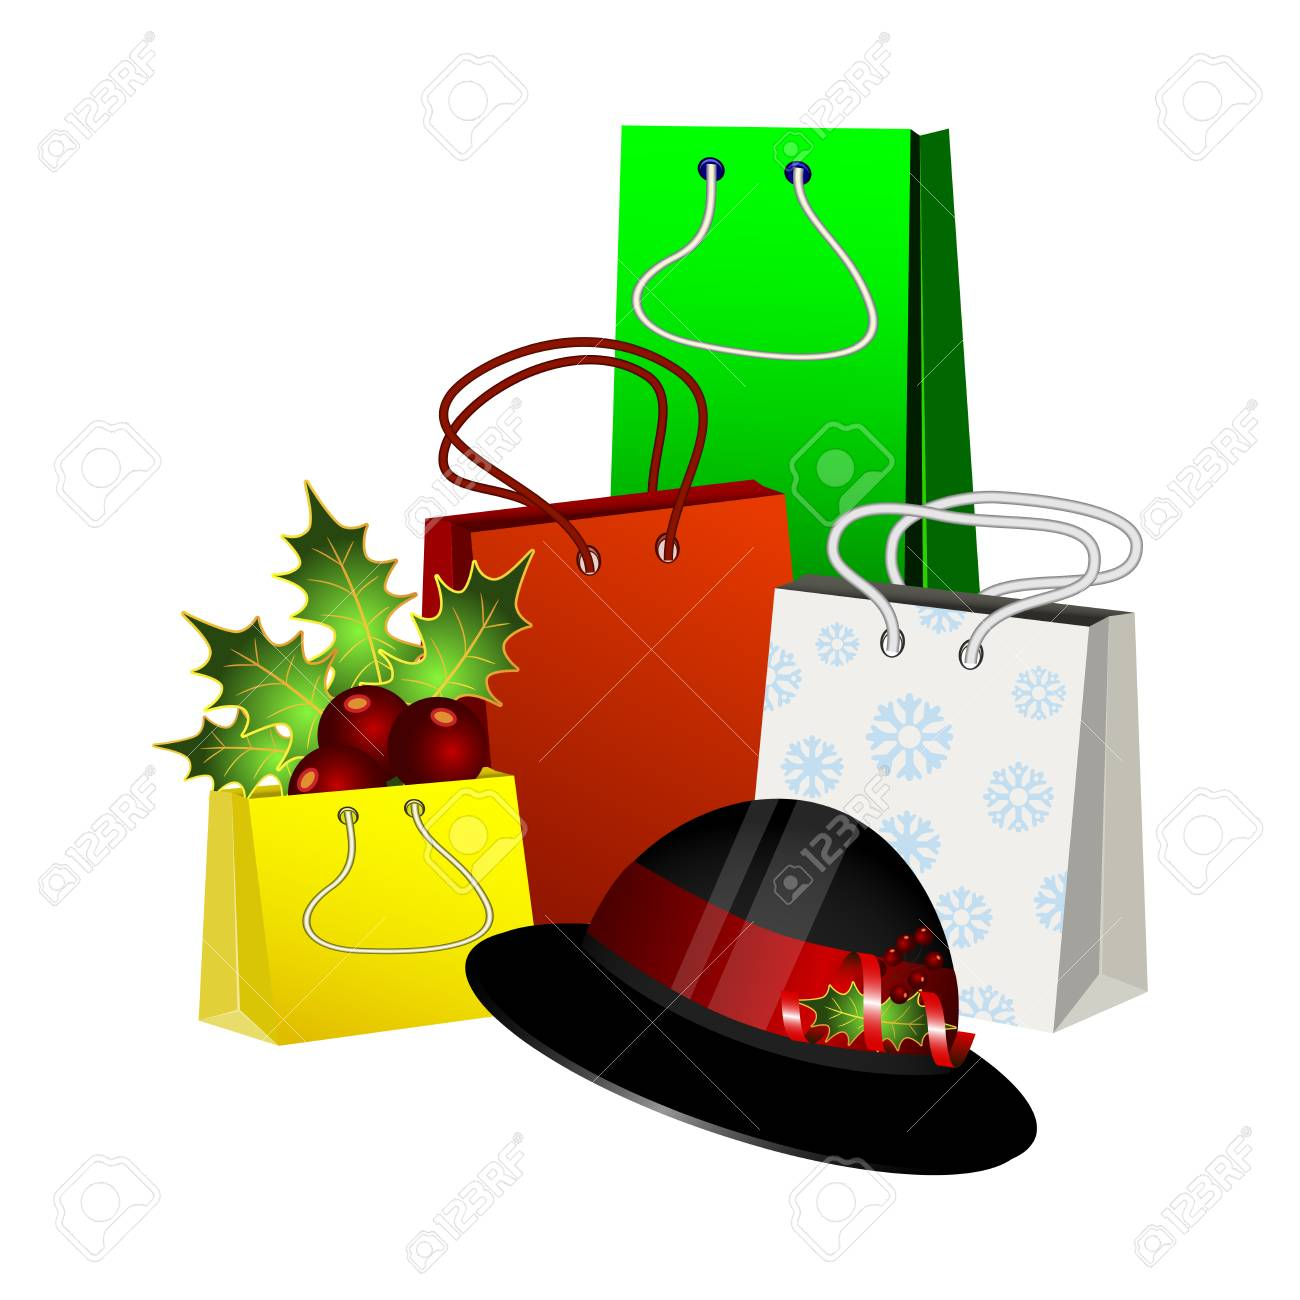 Christmas Gift Packages.Christmas Gift Packages With A Hat